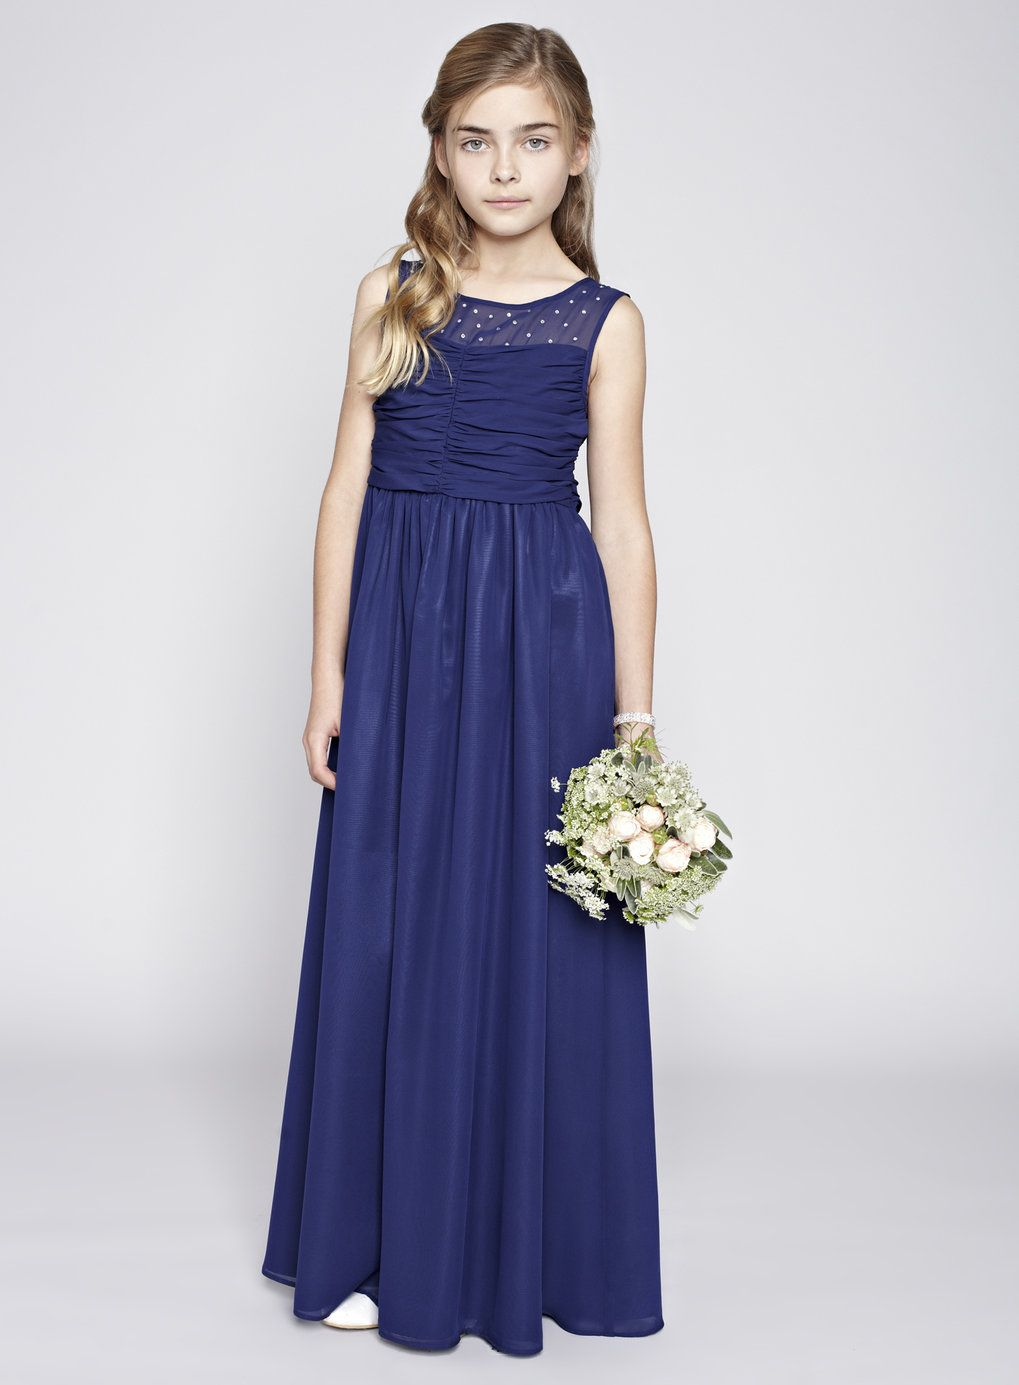 Navy blue junior bridesmaid dresses google search jr navy blue junior bridesmaid dresses google search ombrellifo Image collections